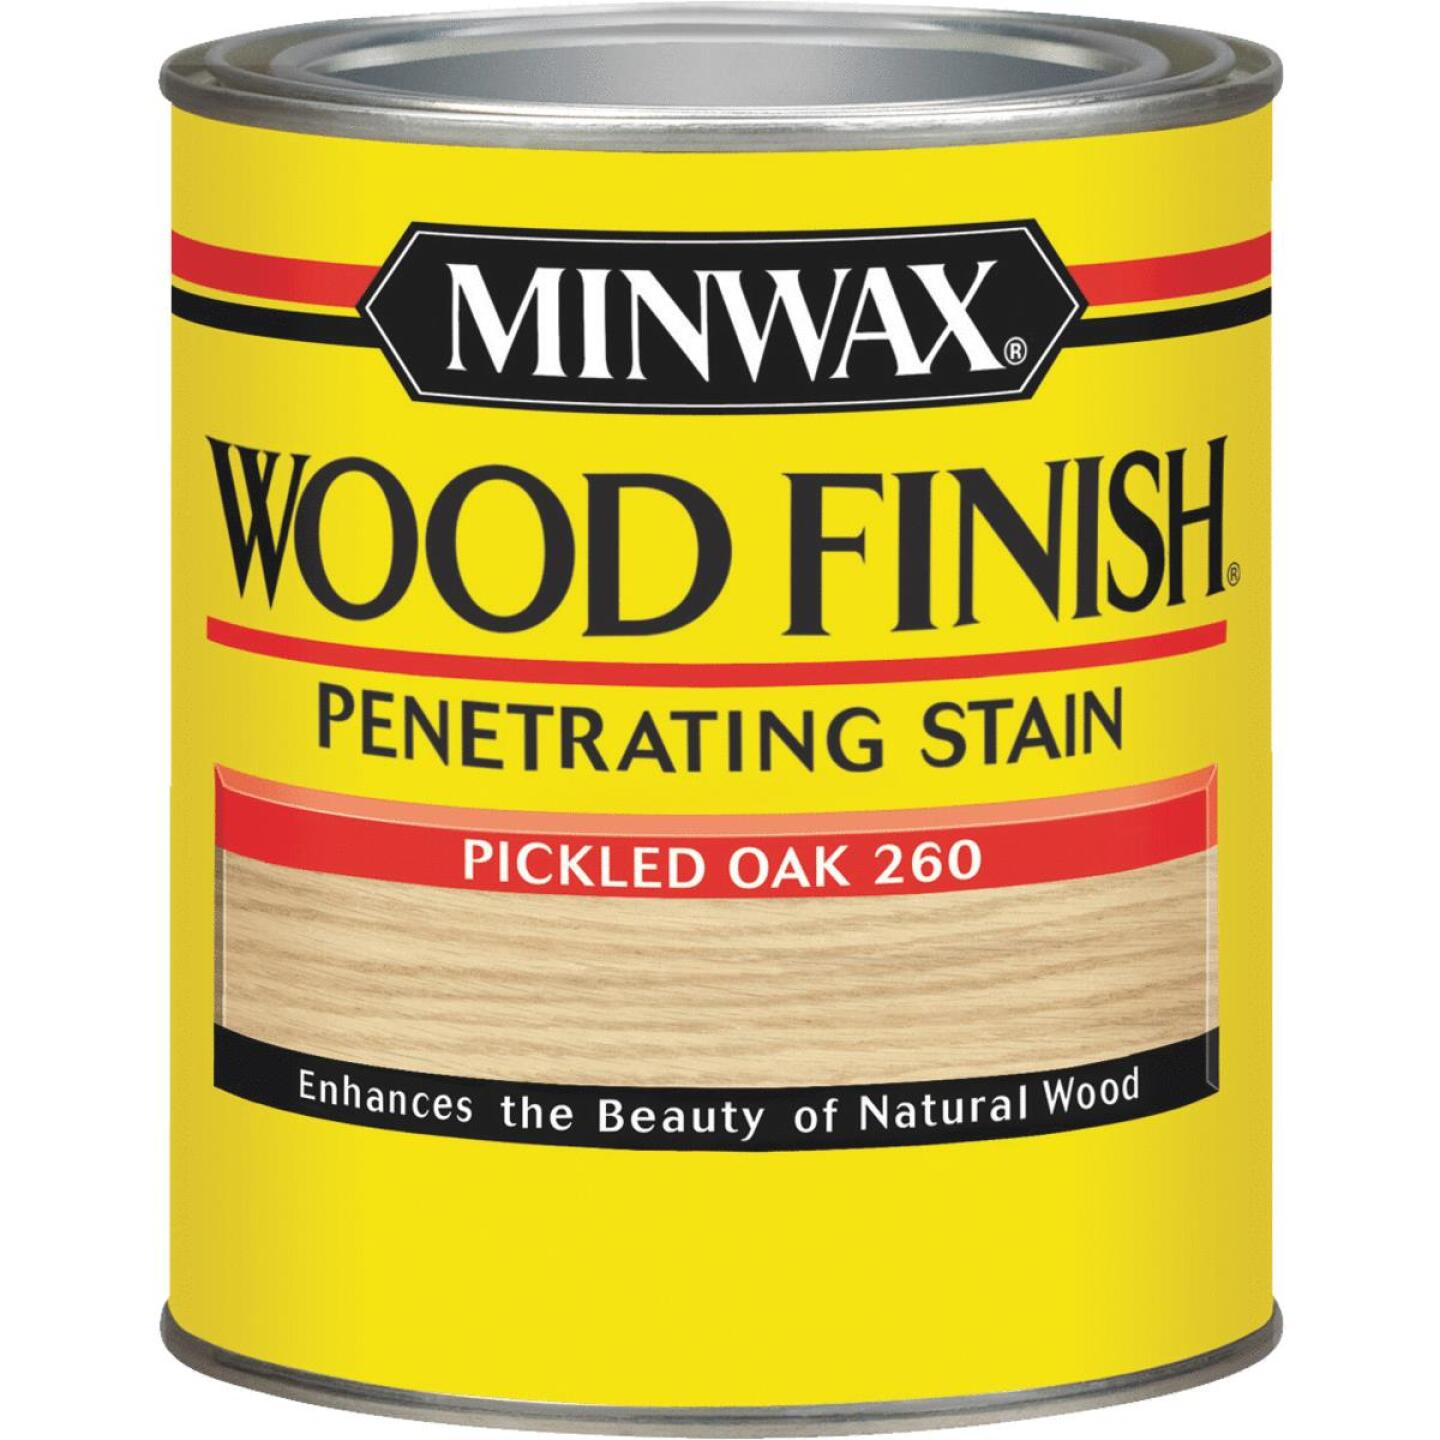 Minwax Wood Finish Penetrating Stain, Pickled Oak, 1 Qt. Image 1